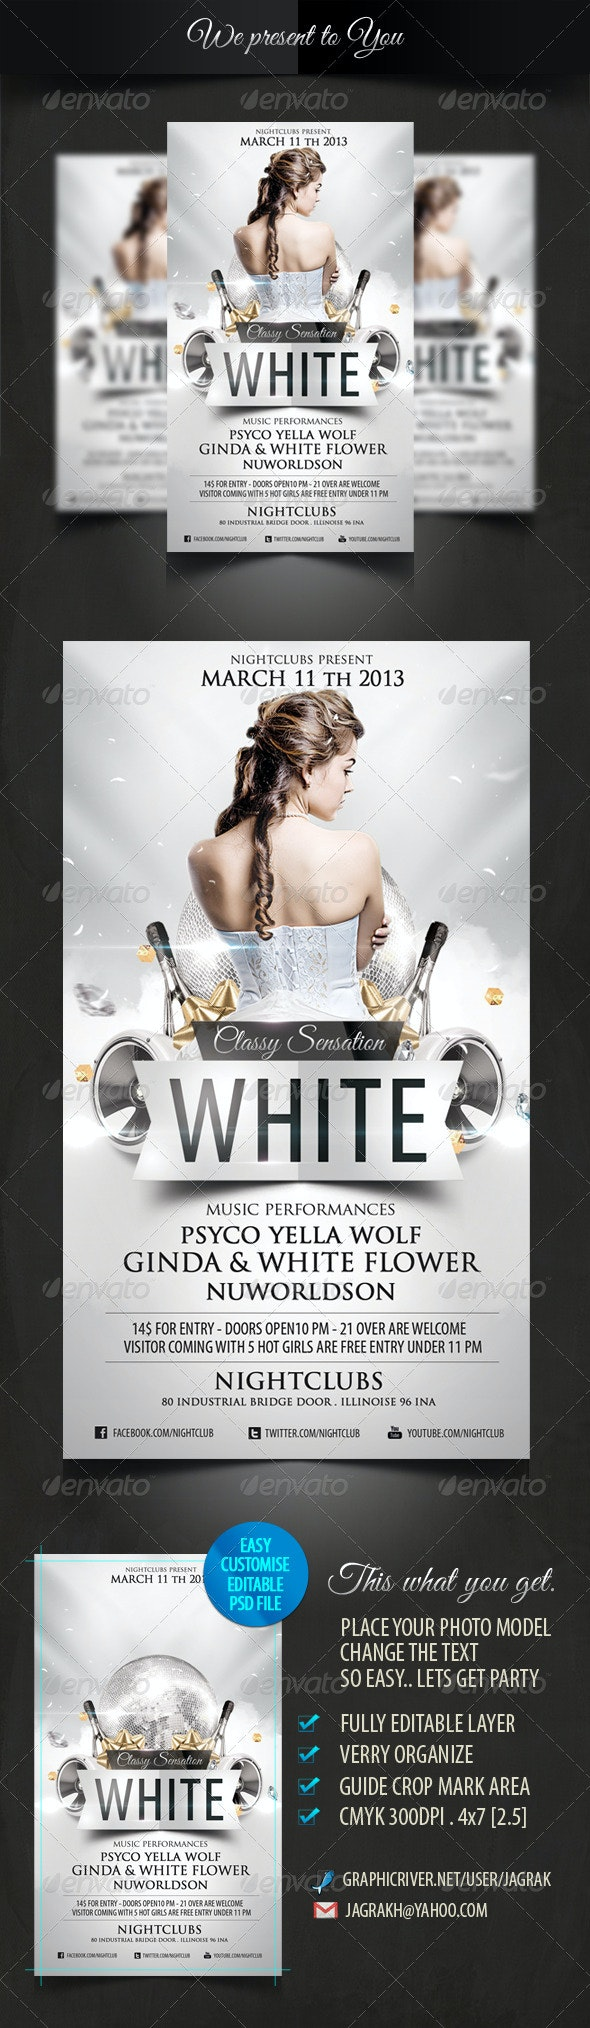 White Classy Sensation Party Flyer Template - Events Flyers